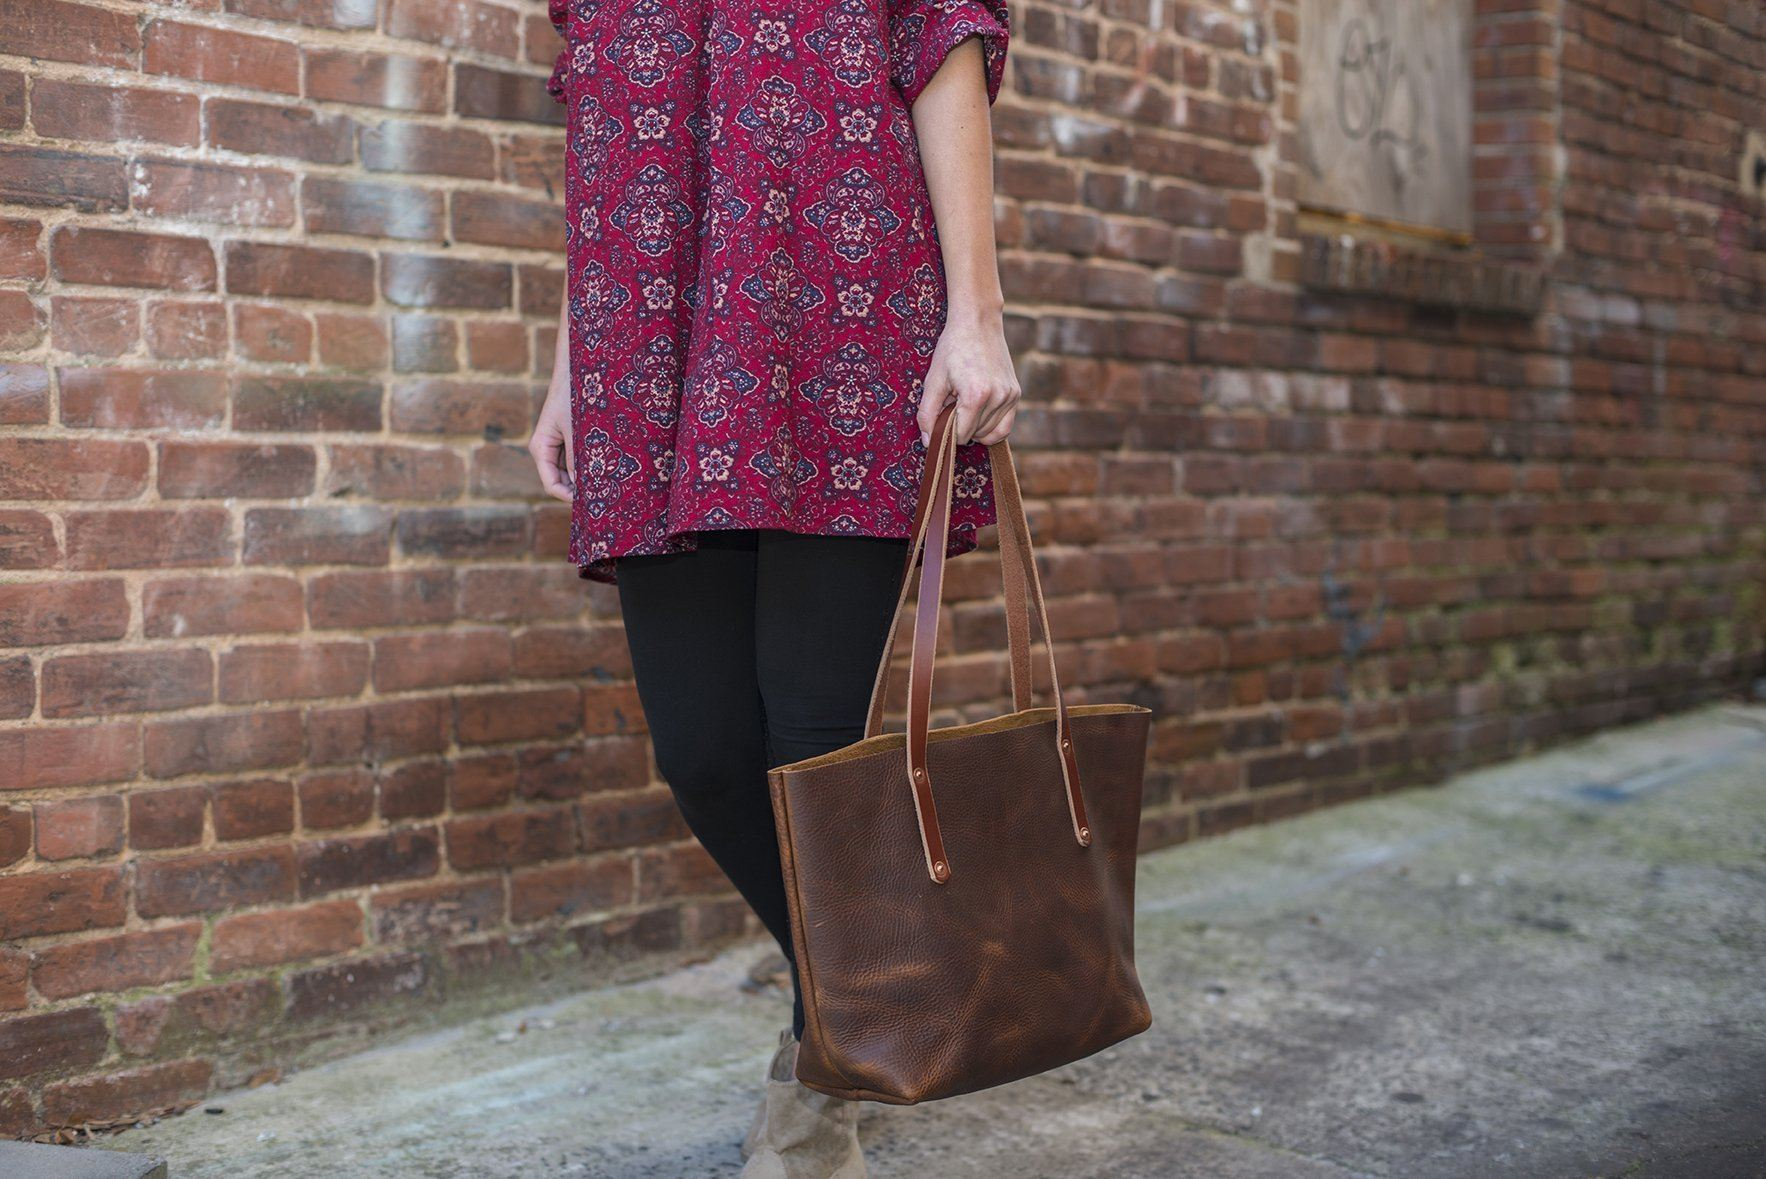 What's Your Ideal Leather Tote Bag?